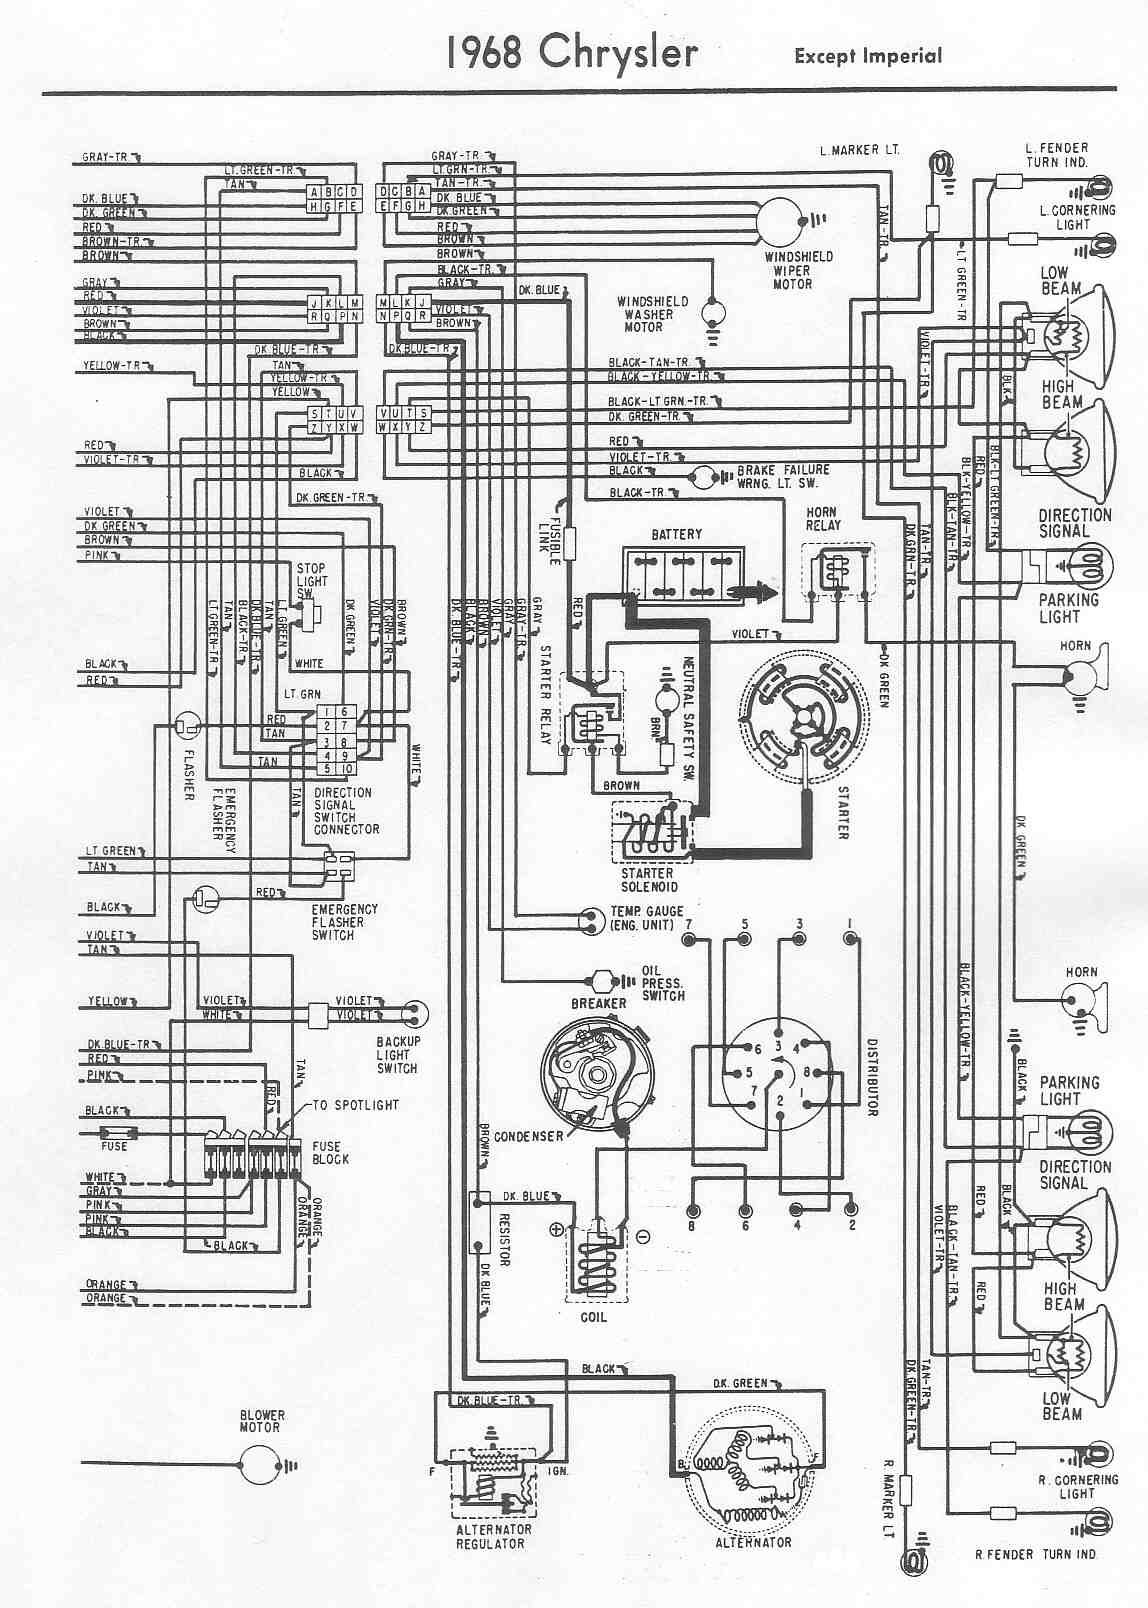 Chrysler Car Manuals Wiring Diagrams Pdf Fault Codes 1970 Vw Harness Free Download Diagram Schematic